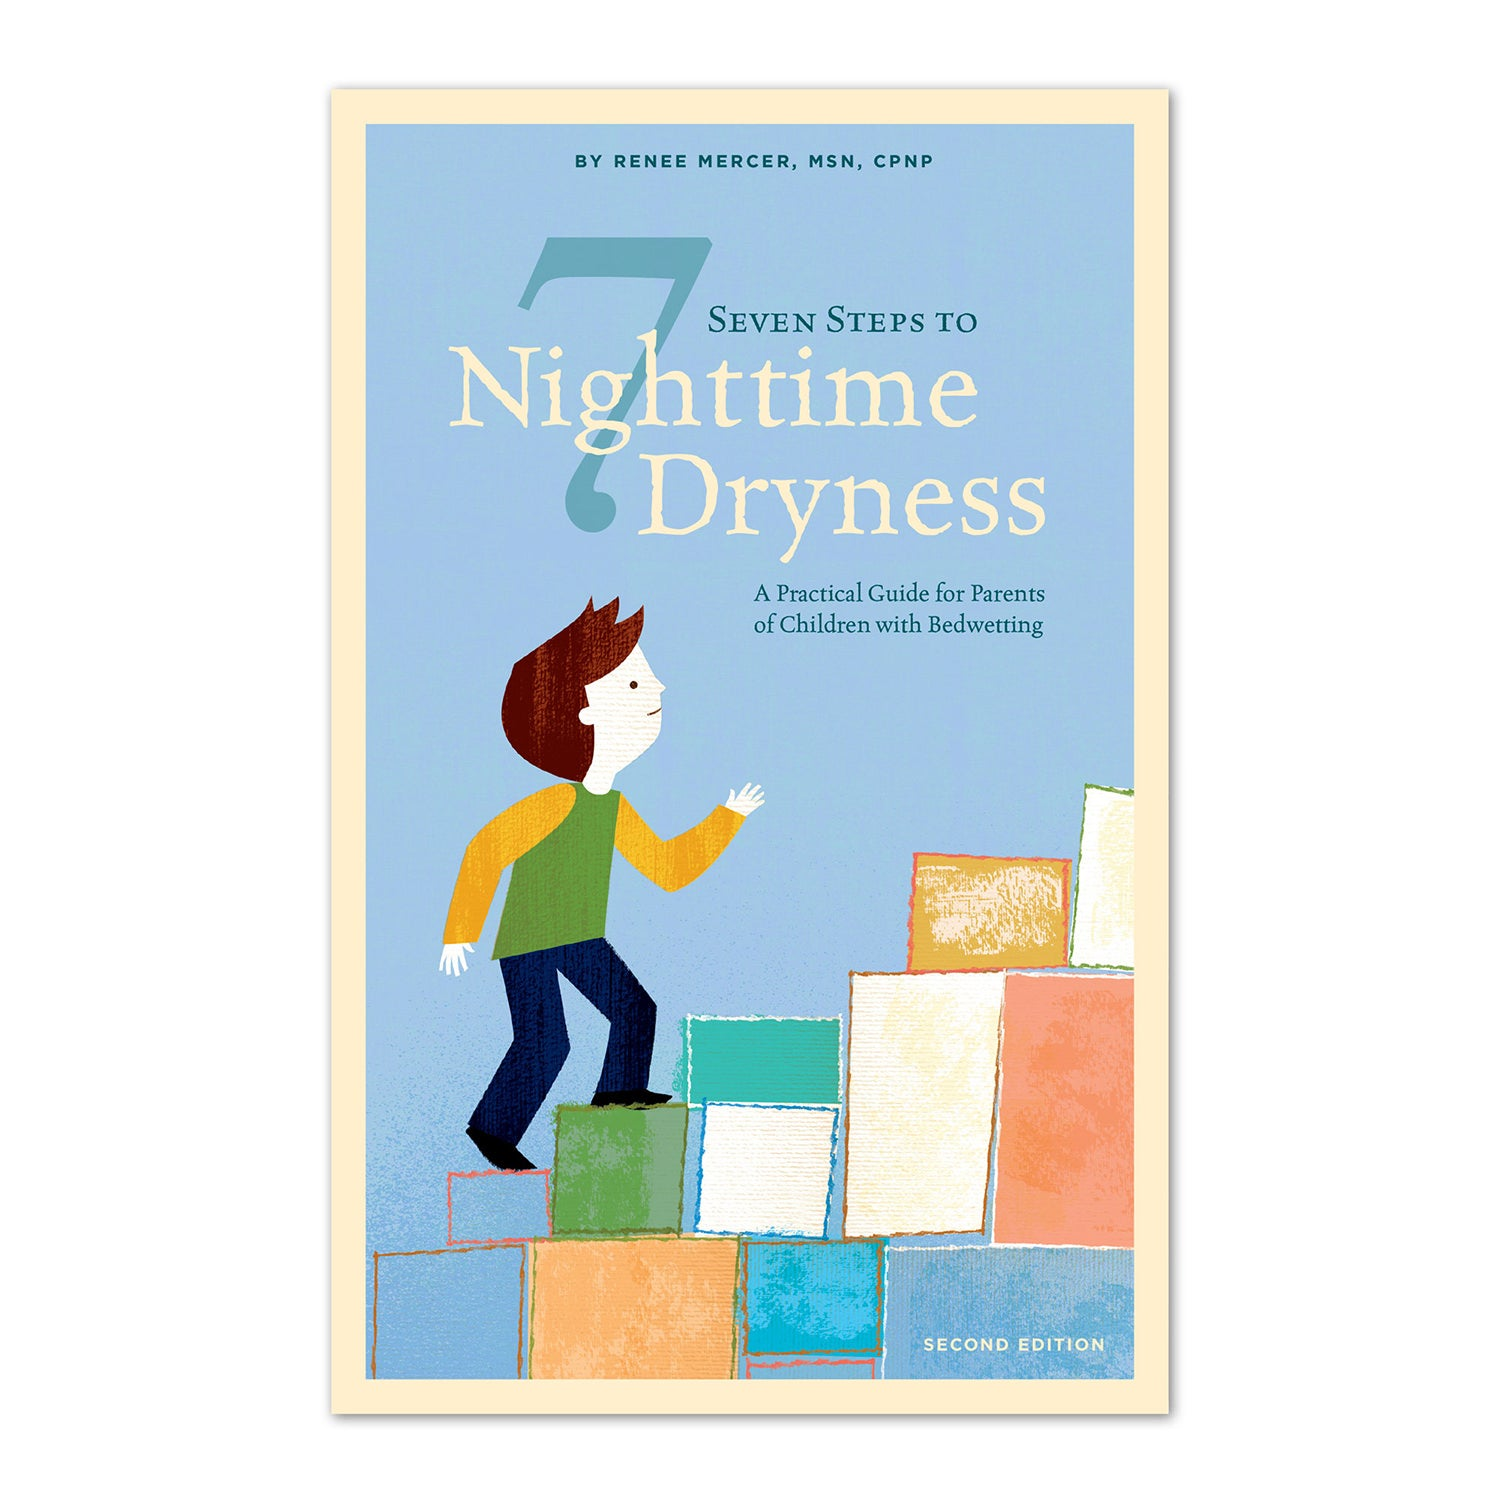 Seven Steps to Nighttime Dryness: 2nd Edition